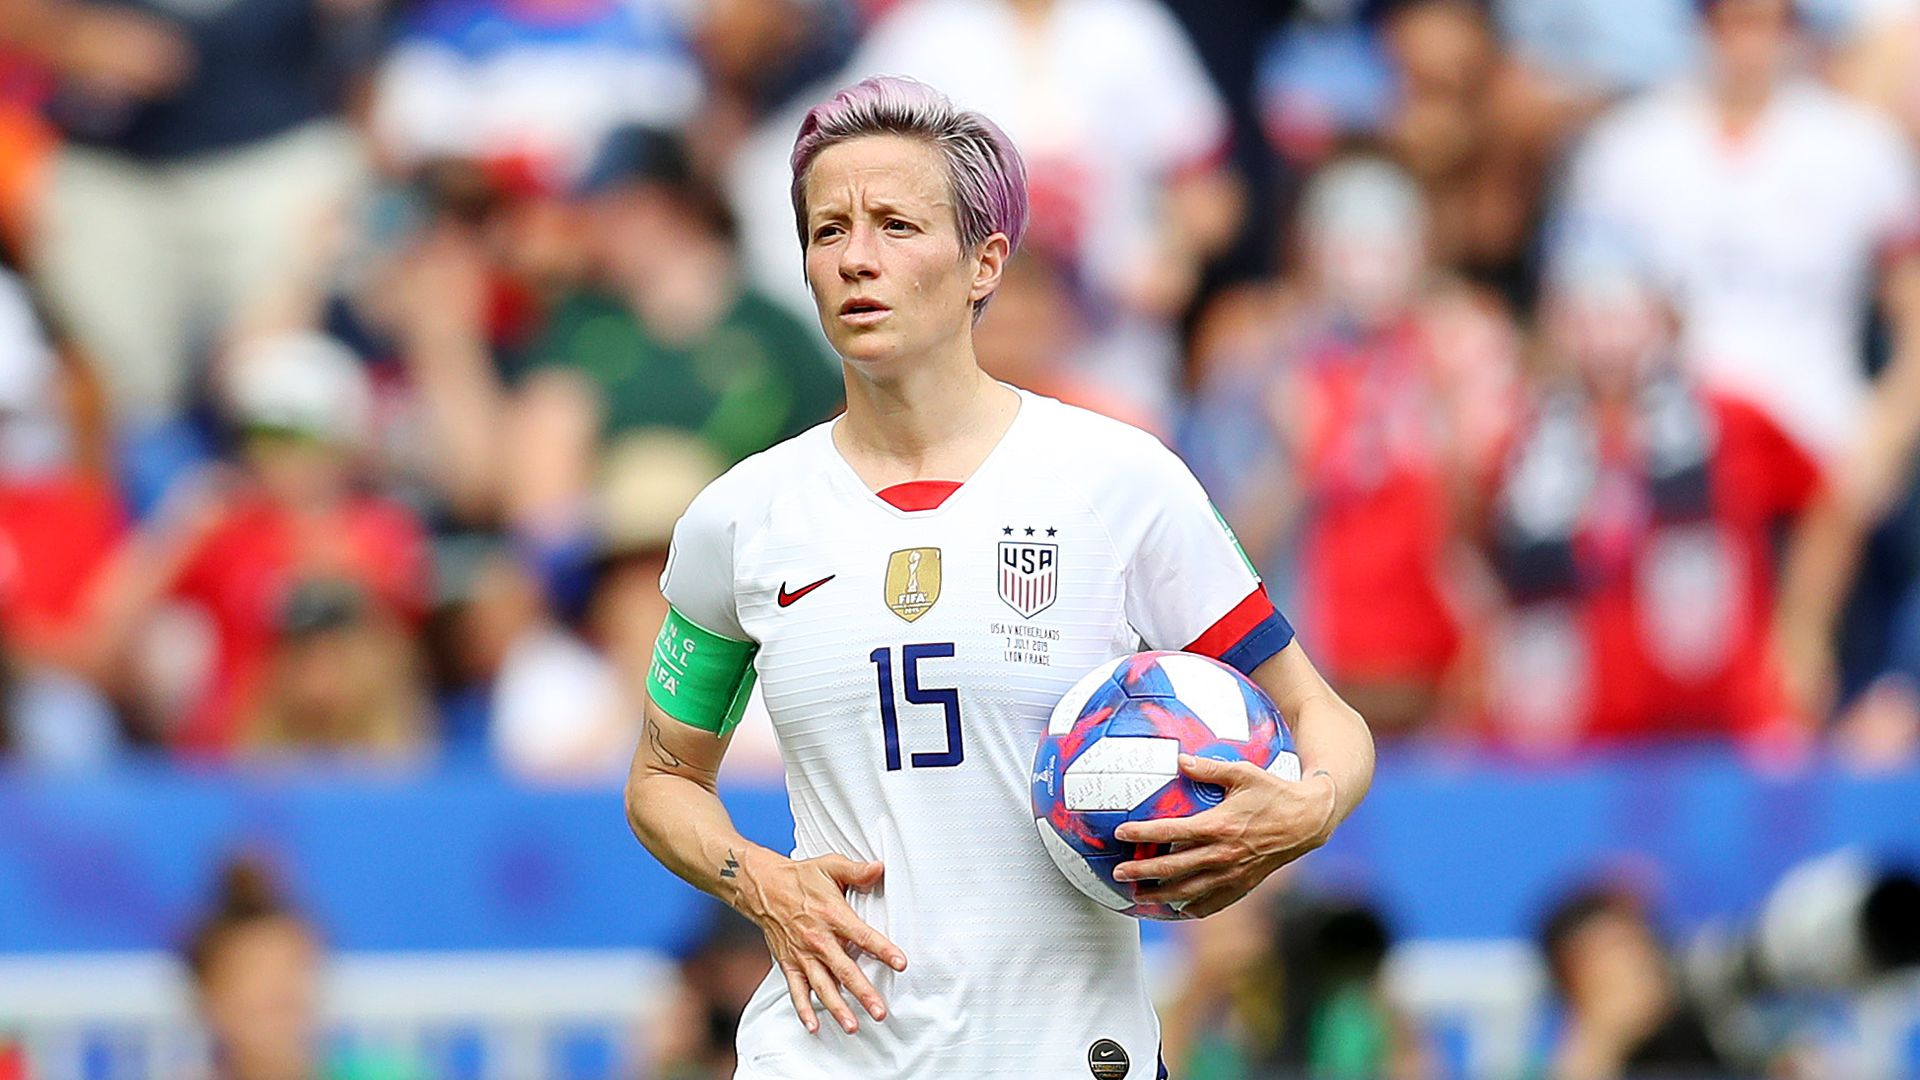 Megan Rapinoe of the USA prepares to take a penalty kick during the 2019 FIFA Women's World Cup France Final match.